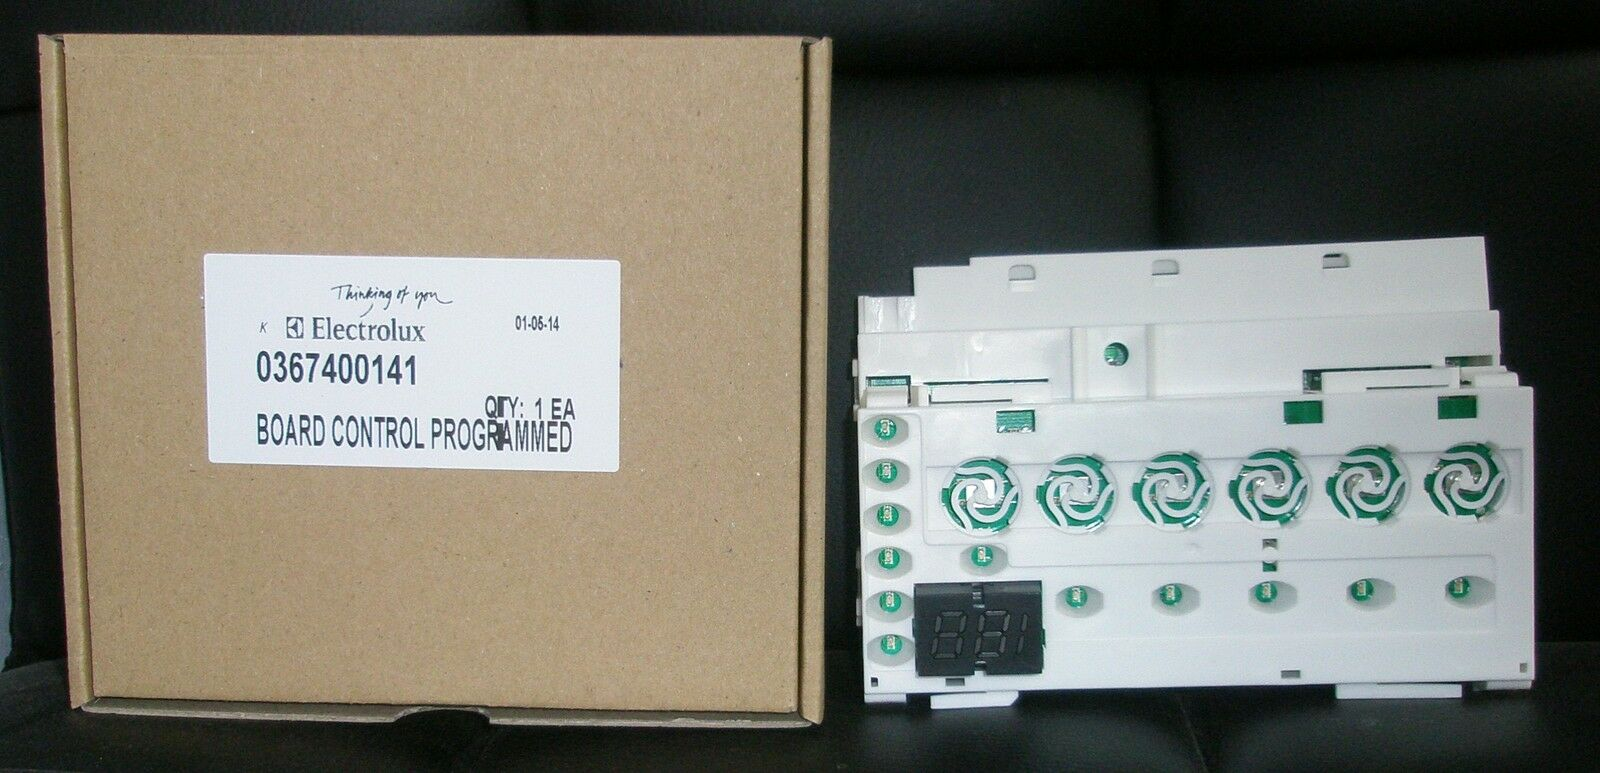 DISHLEX ELECTROLUX DISHWASHER ELECTRONIC CONTROL PC BOARD PART # 0367400141